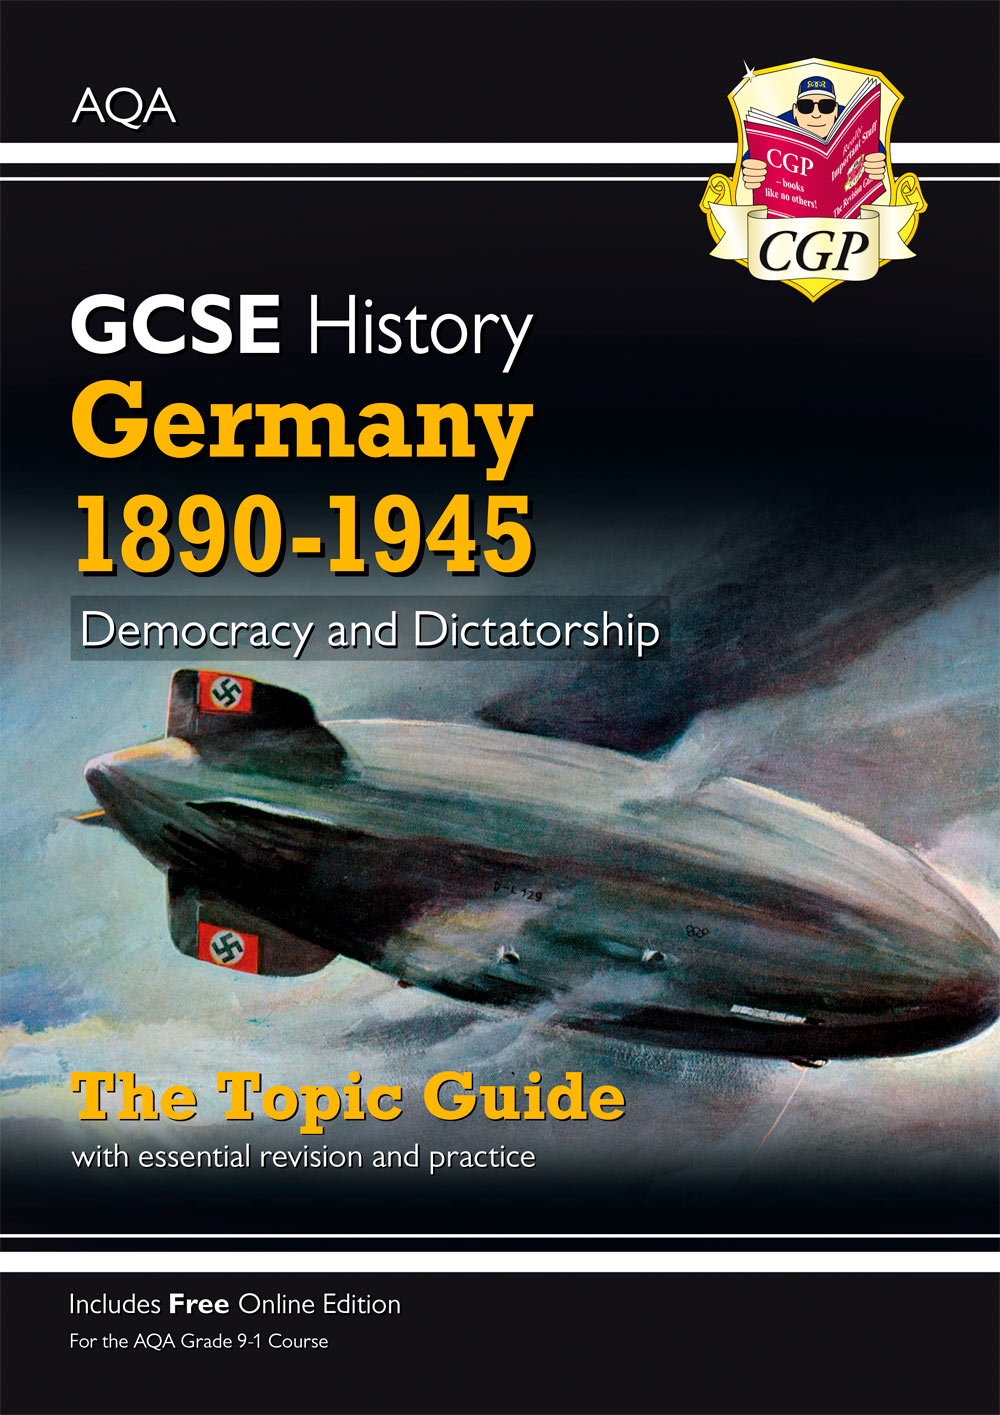 HAGEO41 - New Grade 9-1 GCSE History AQA Topic Guide - Germany, 1890-1945: Democracy and Dictatorshi